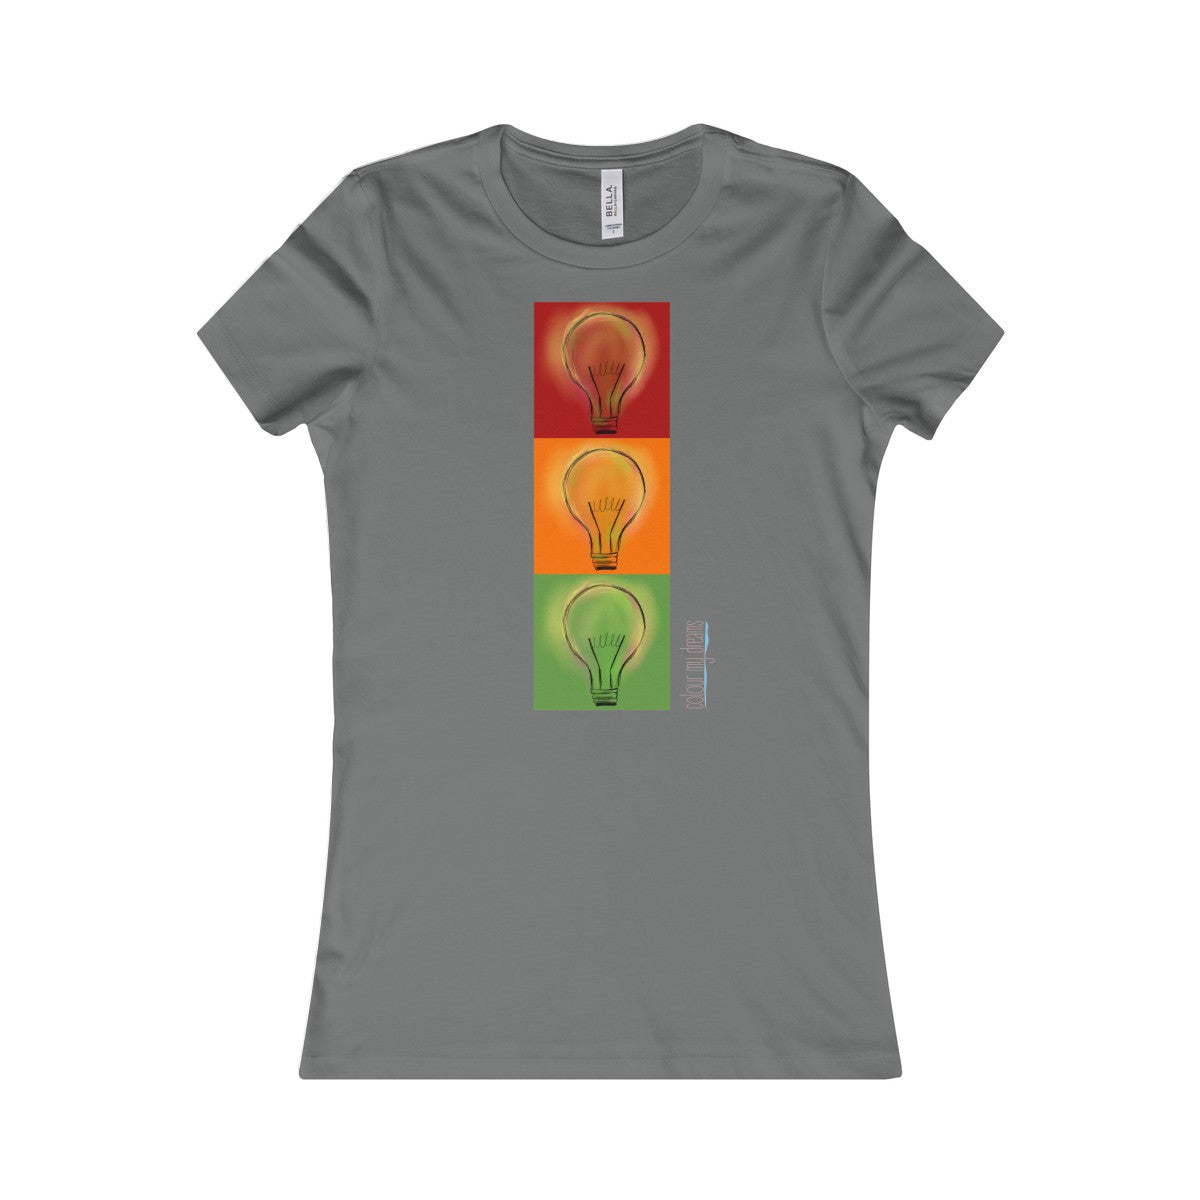 Women's Favourite T-Shirt - Lightbulb Moment